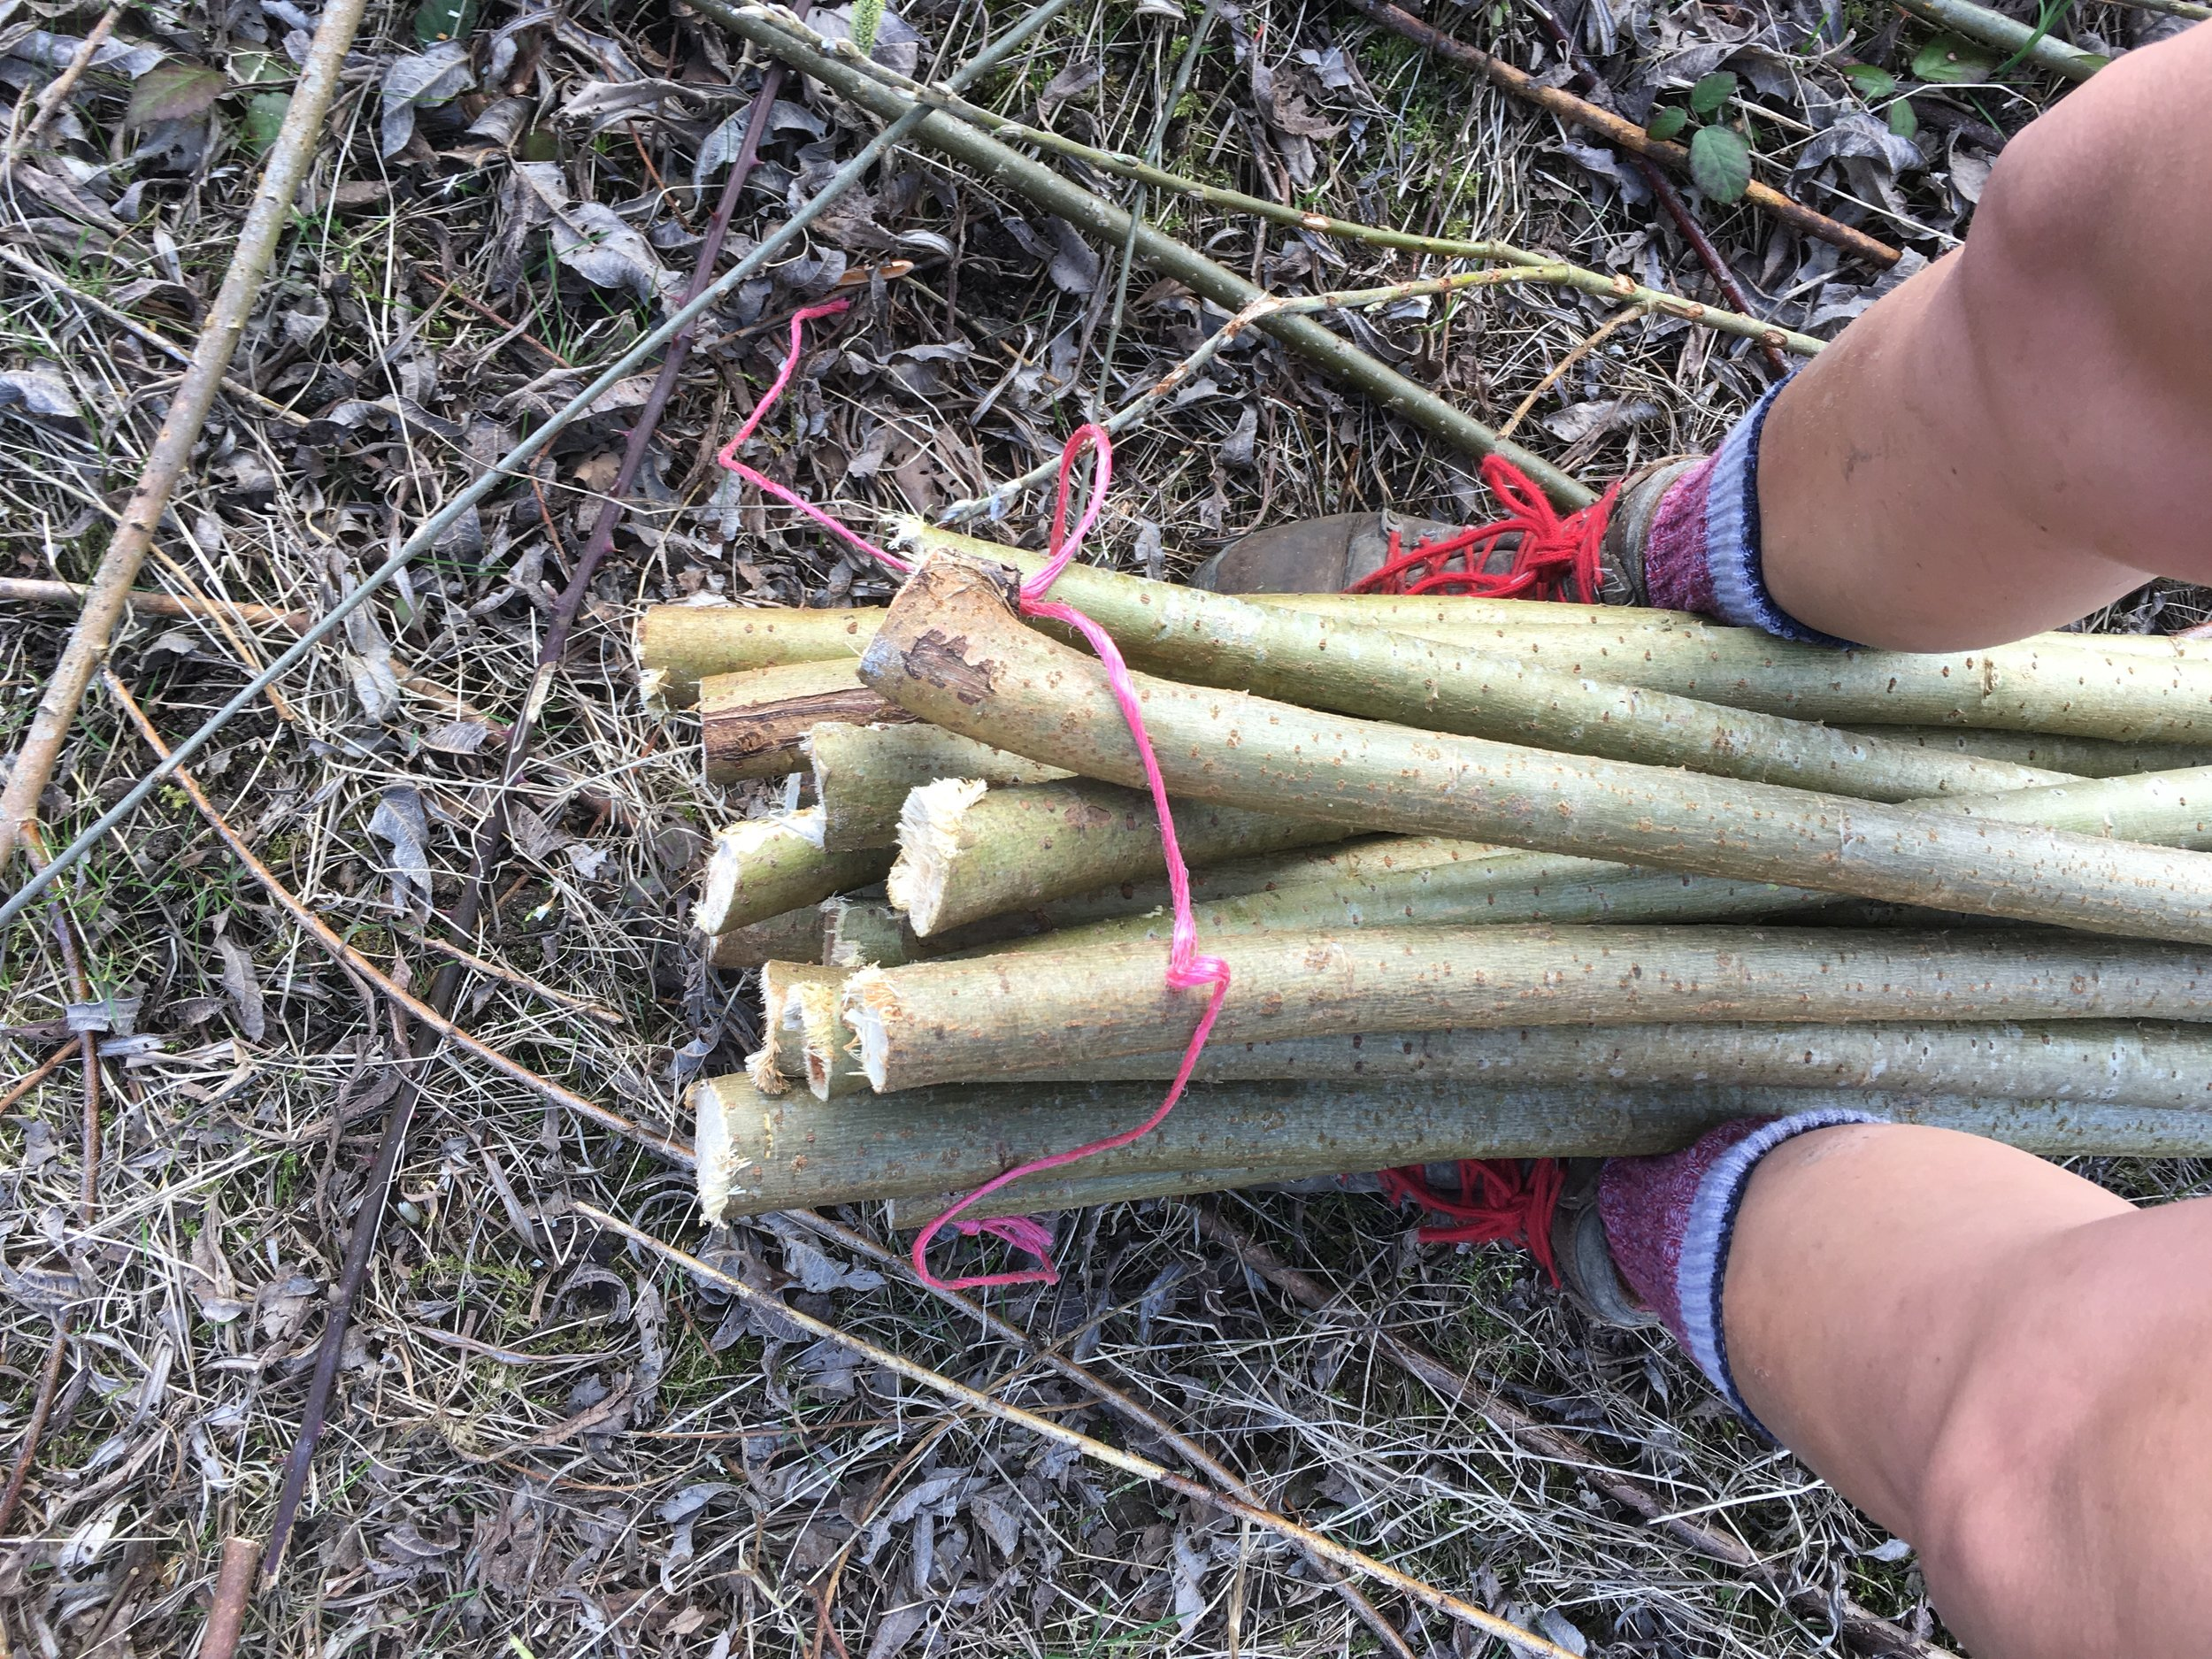 Tying a bundle of willow